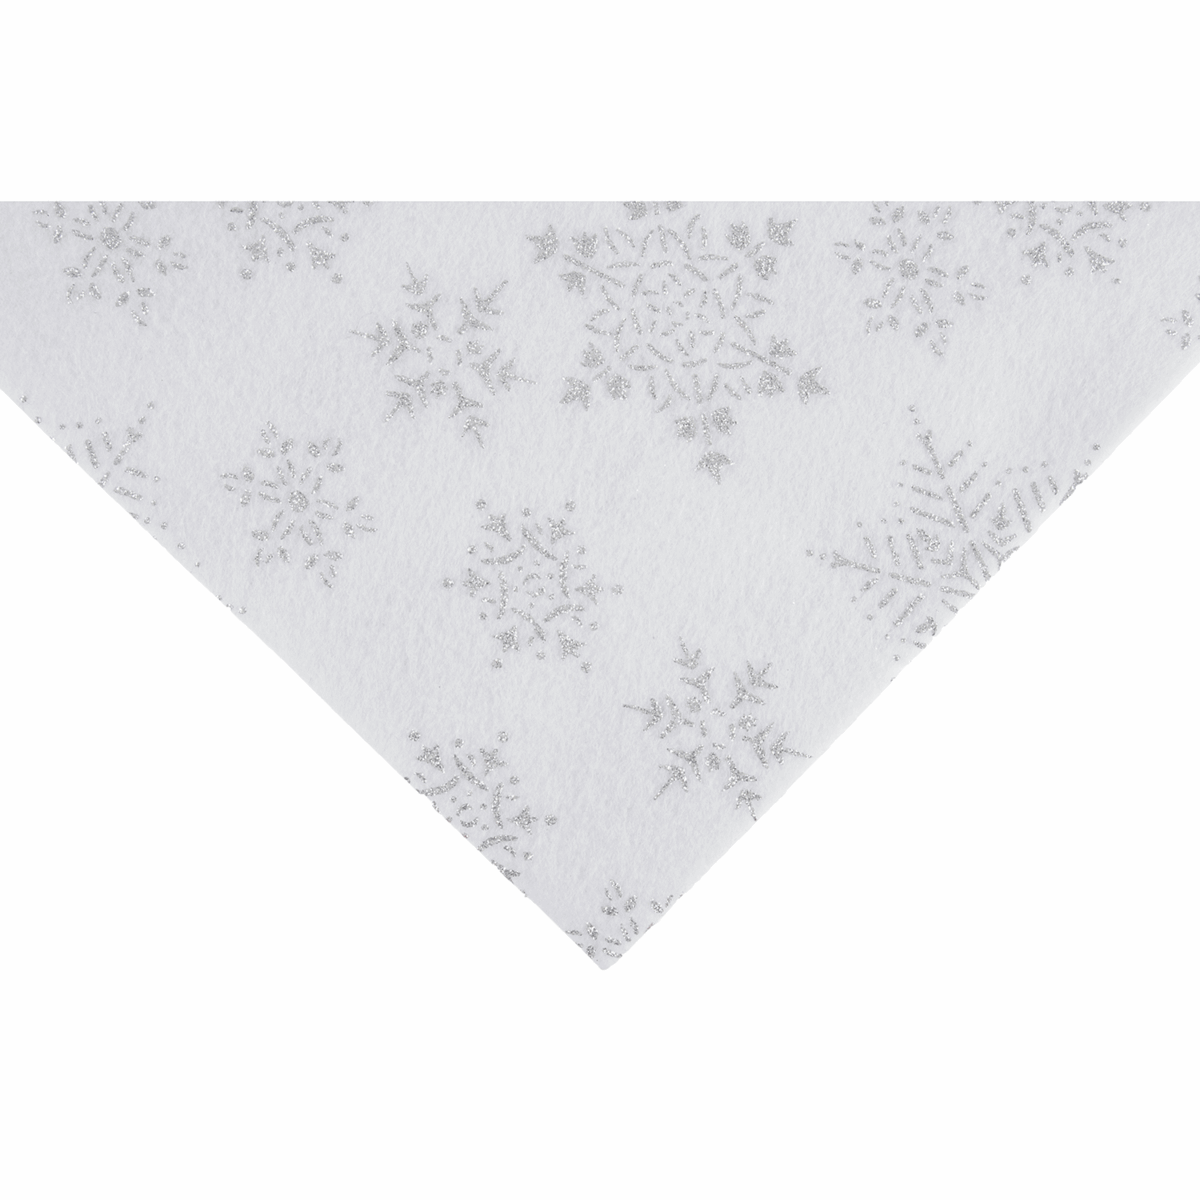 Picture of Felt Pack: Glitter Snowflake: 23cm x 30cm: White: 20 Pieces